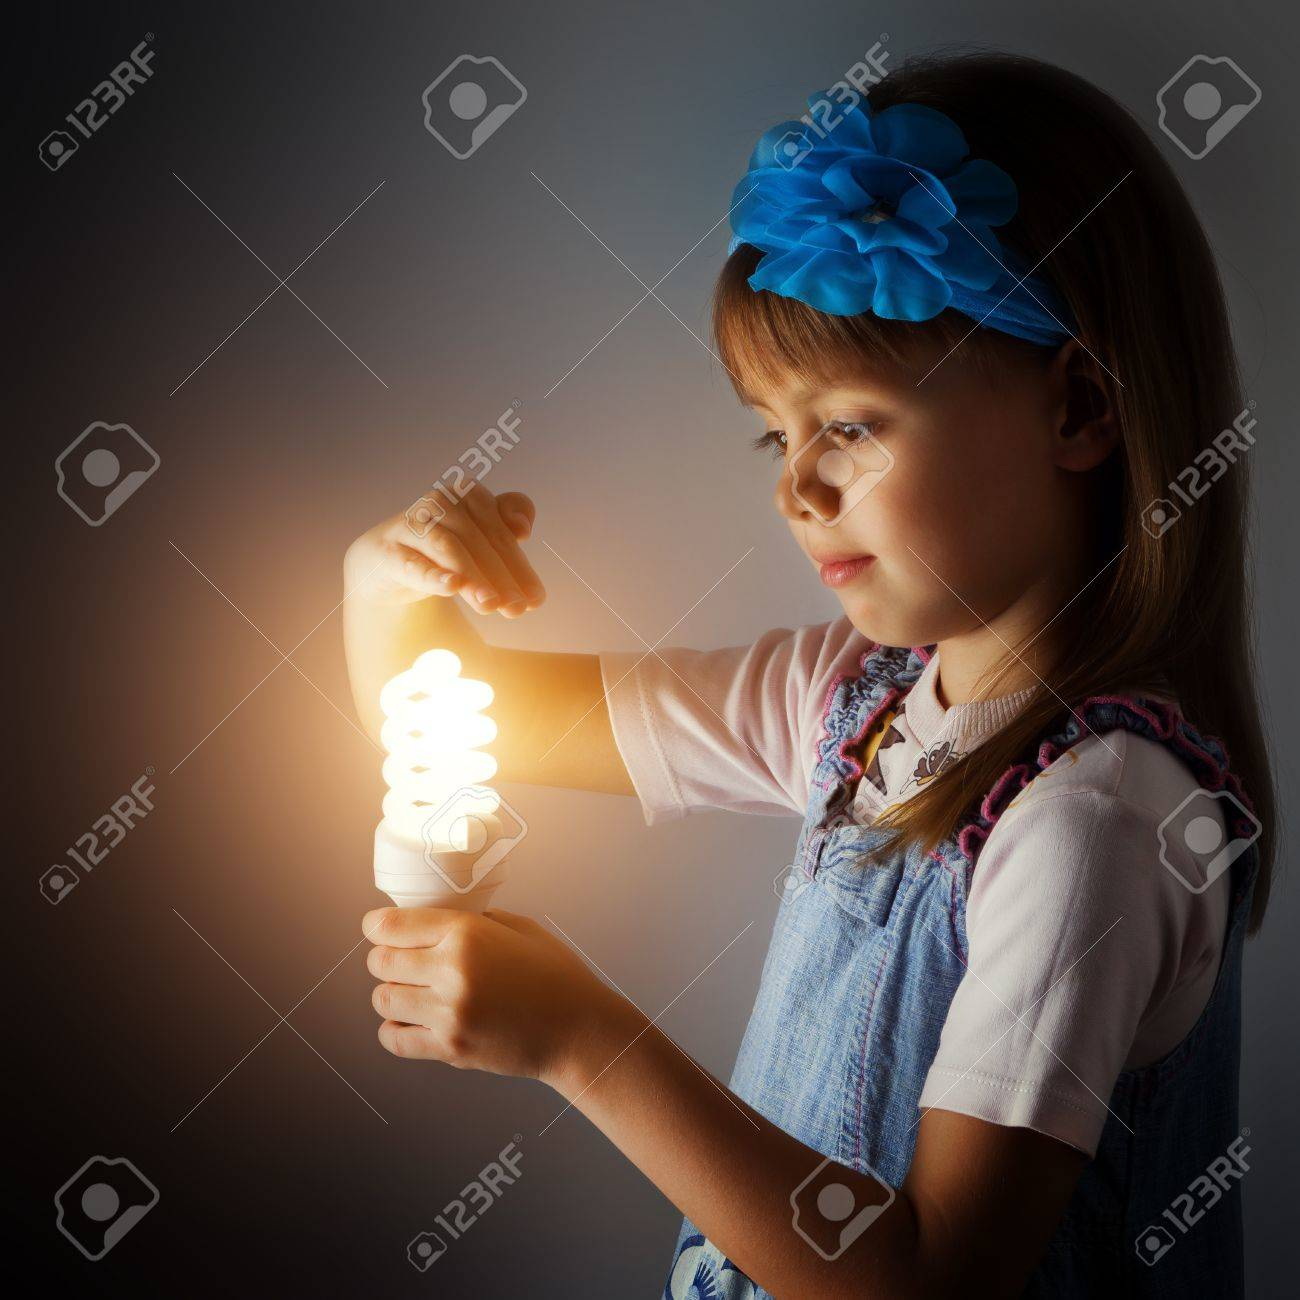 Little Girl With A Lit Lamp In Hand Stock Photo, Picture And ... for Little Girl With Lamp  186ref